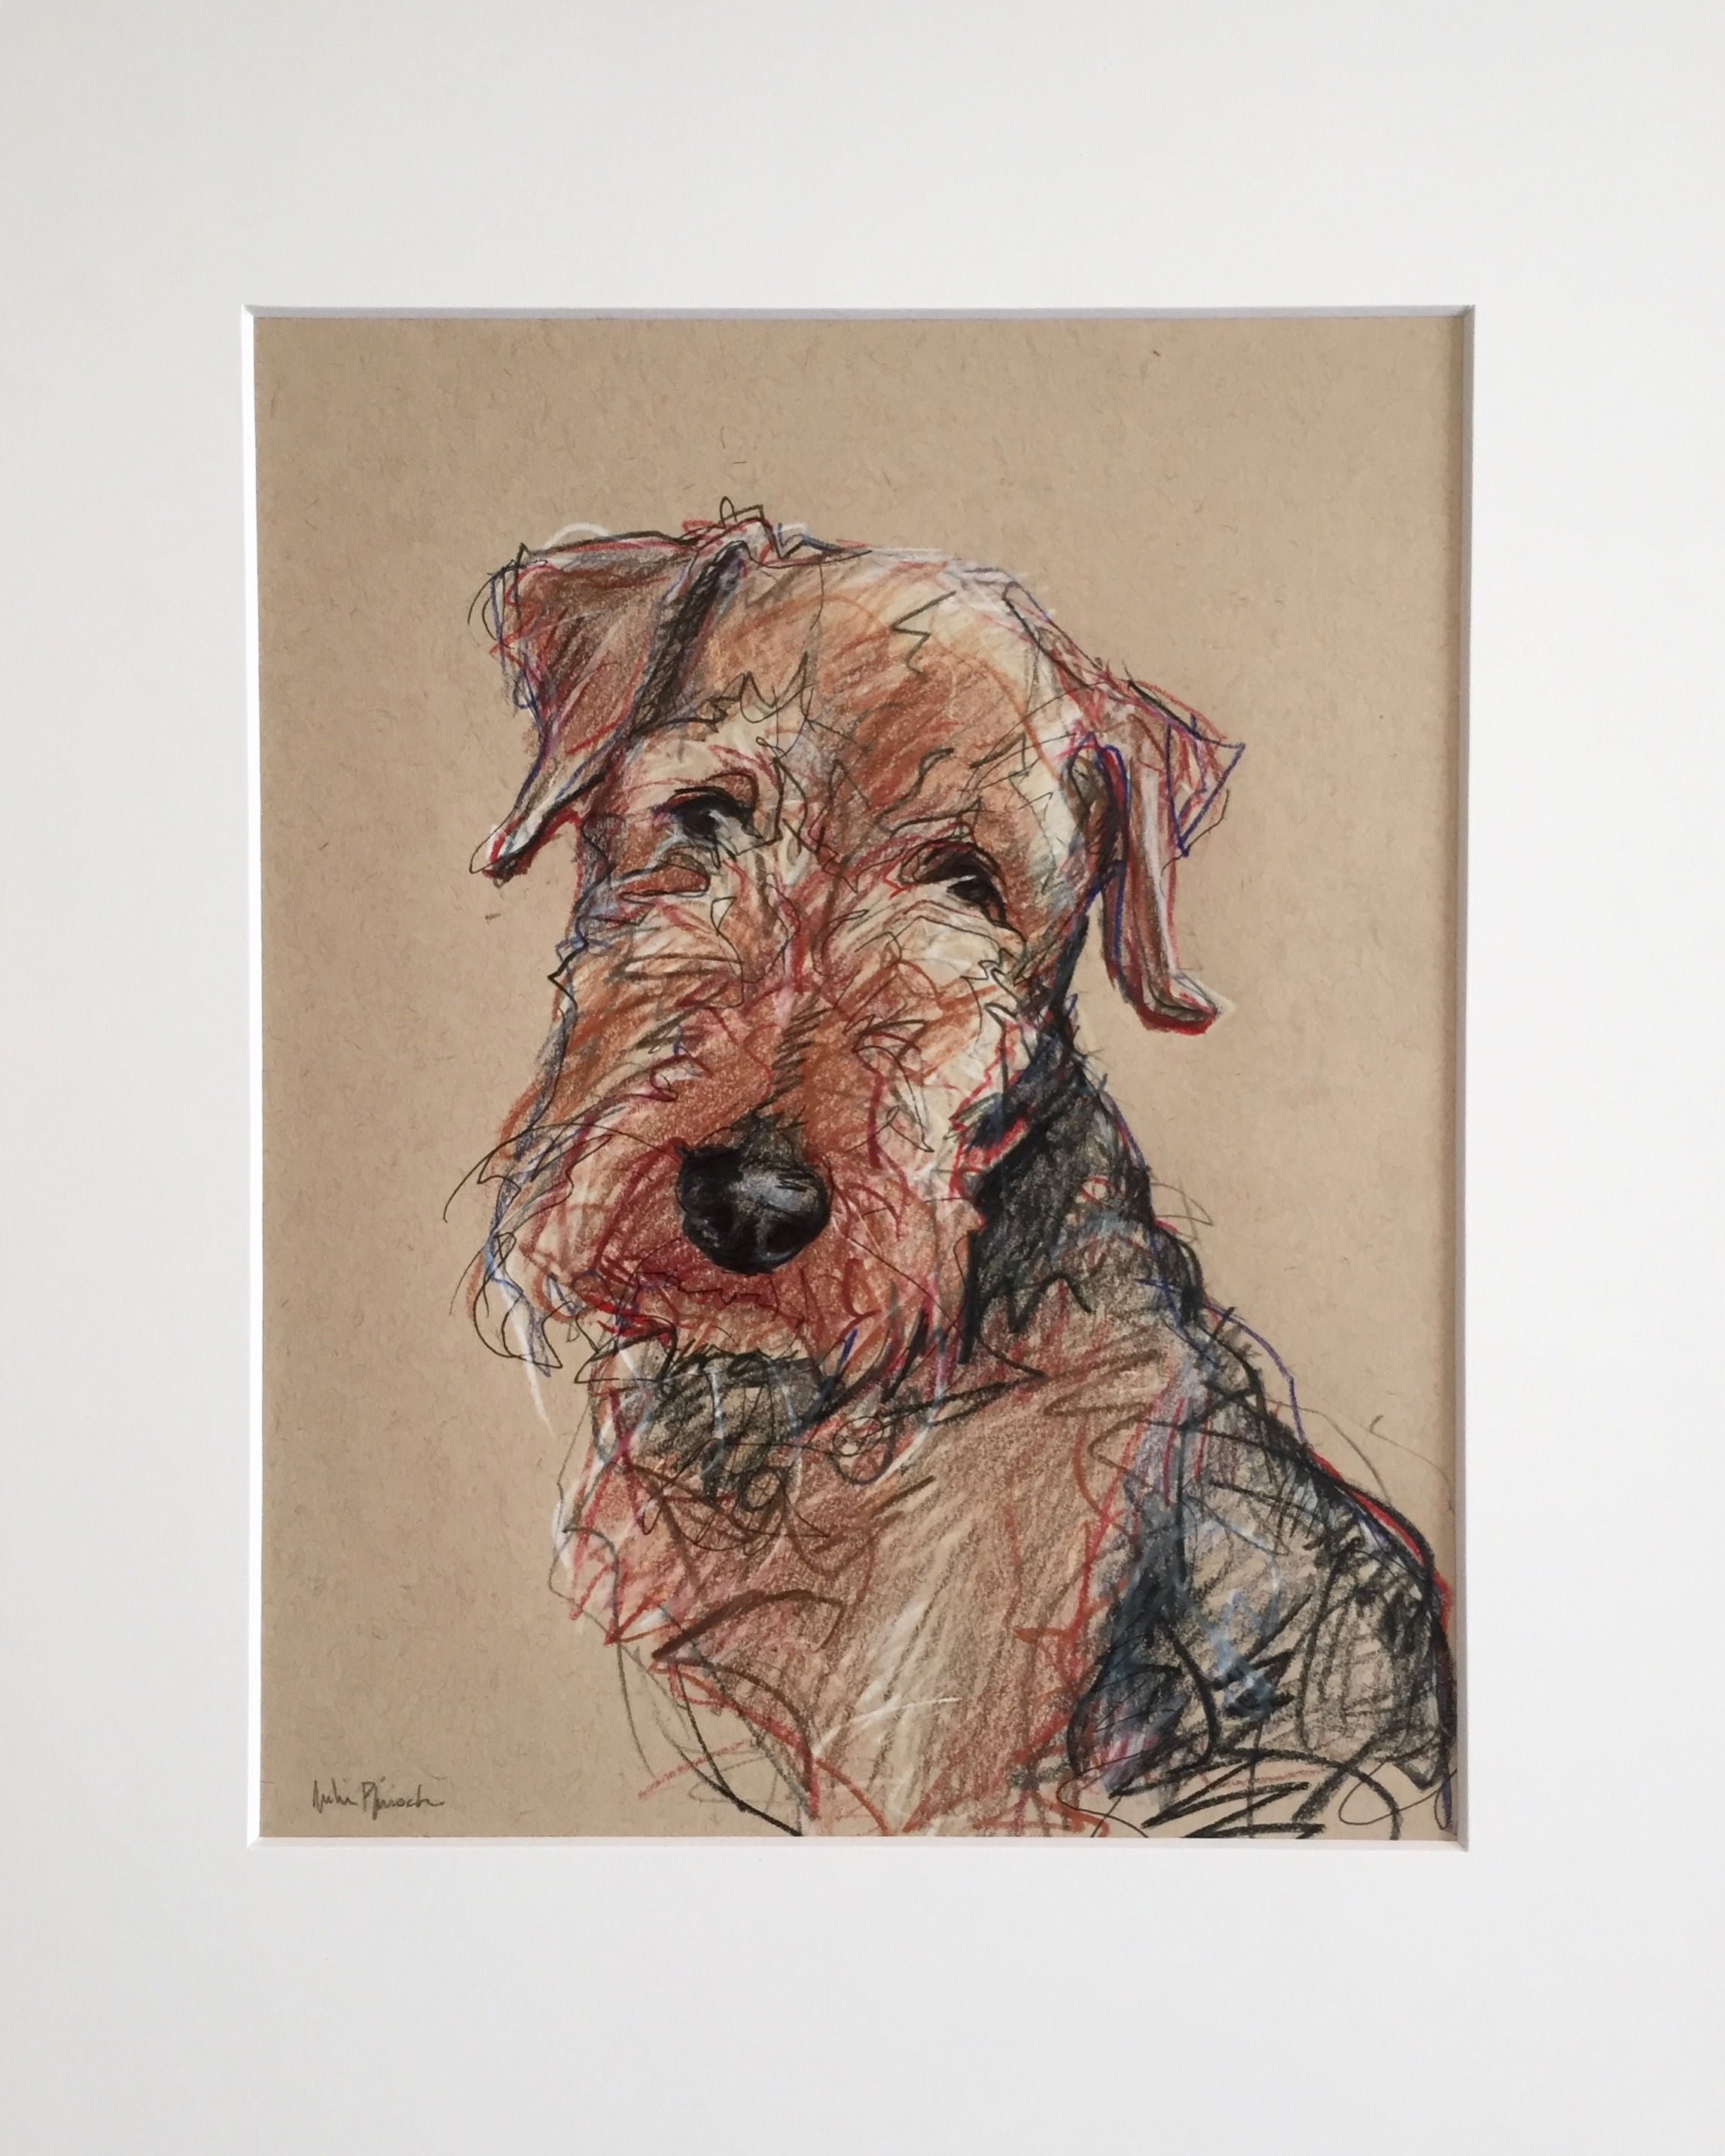 2291x2863 Winnifred Hand Drawn Pet Portrait Pencil, Colored Pencil And Ink